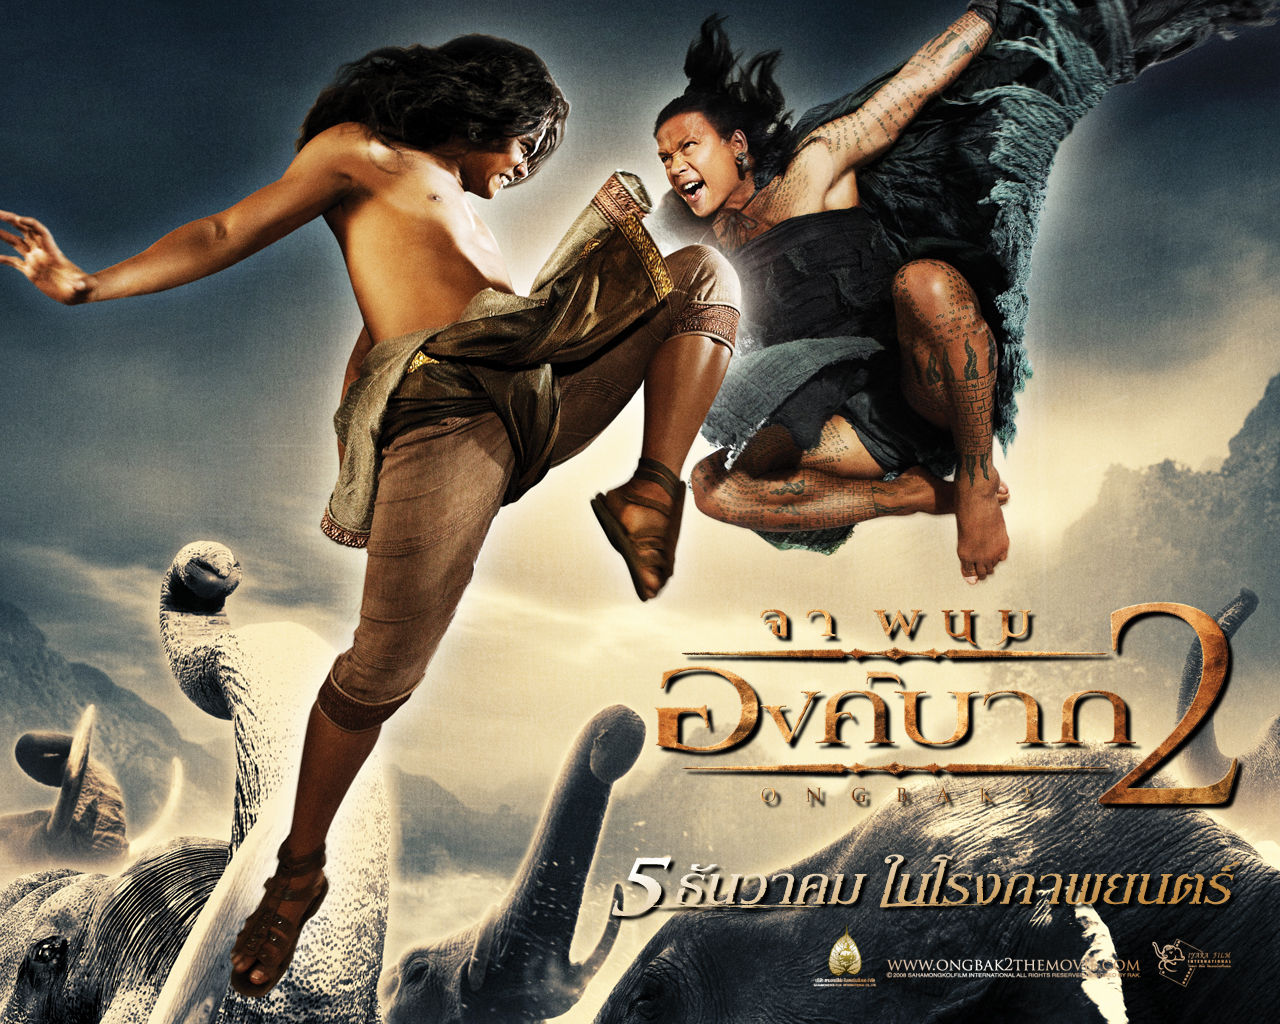 Ong Bak 1 Full Movie In Hindi Mp4 | Search Results | Pet Suppllie